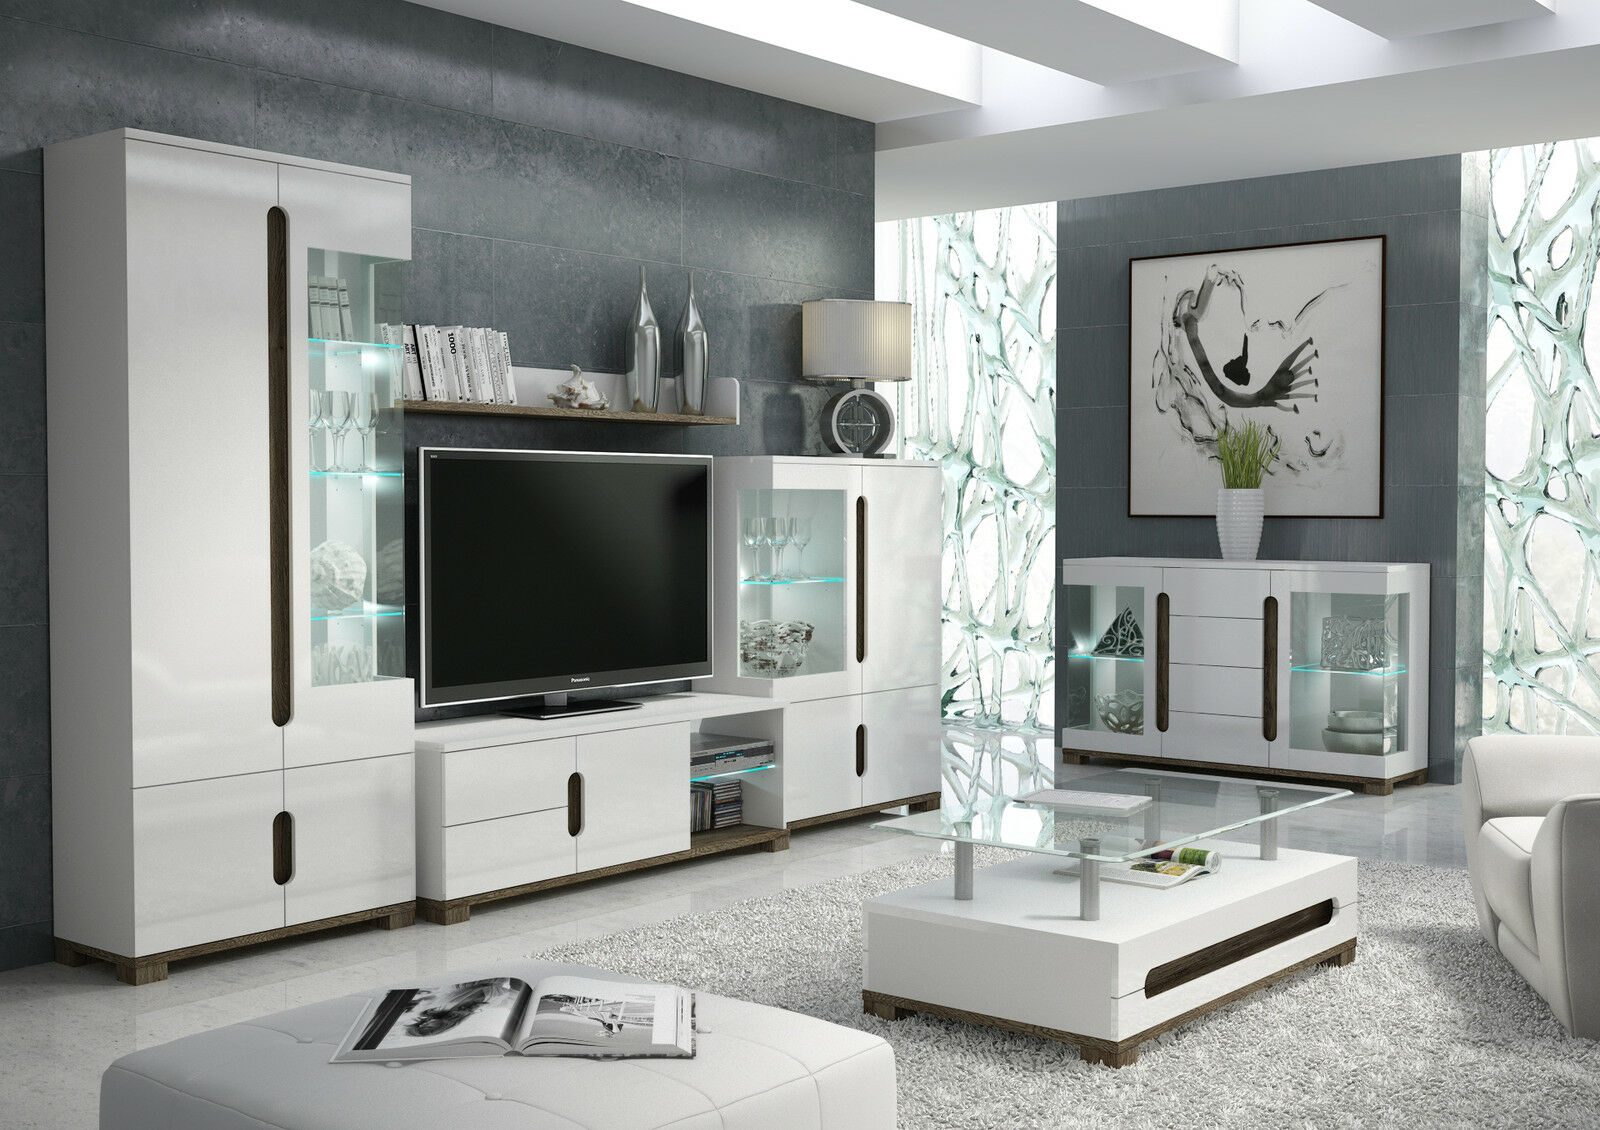 Lorenz High Gloss White Sideboard Tv Unit Tall Display Cabinet Lounge Furniture Ebay